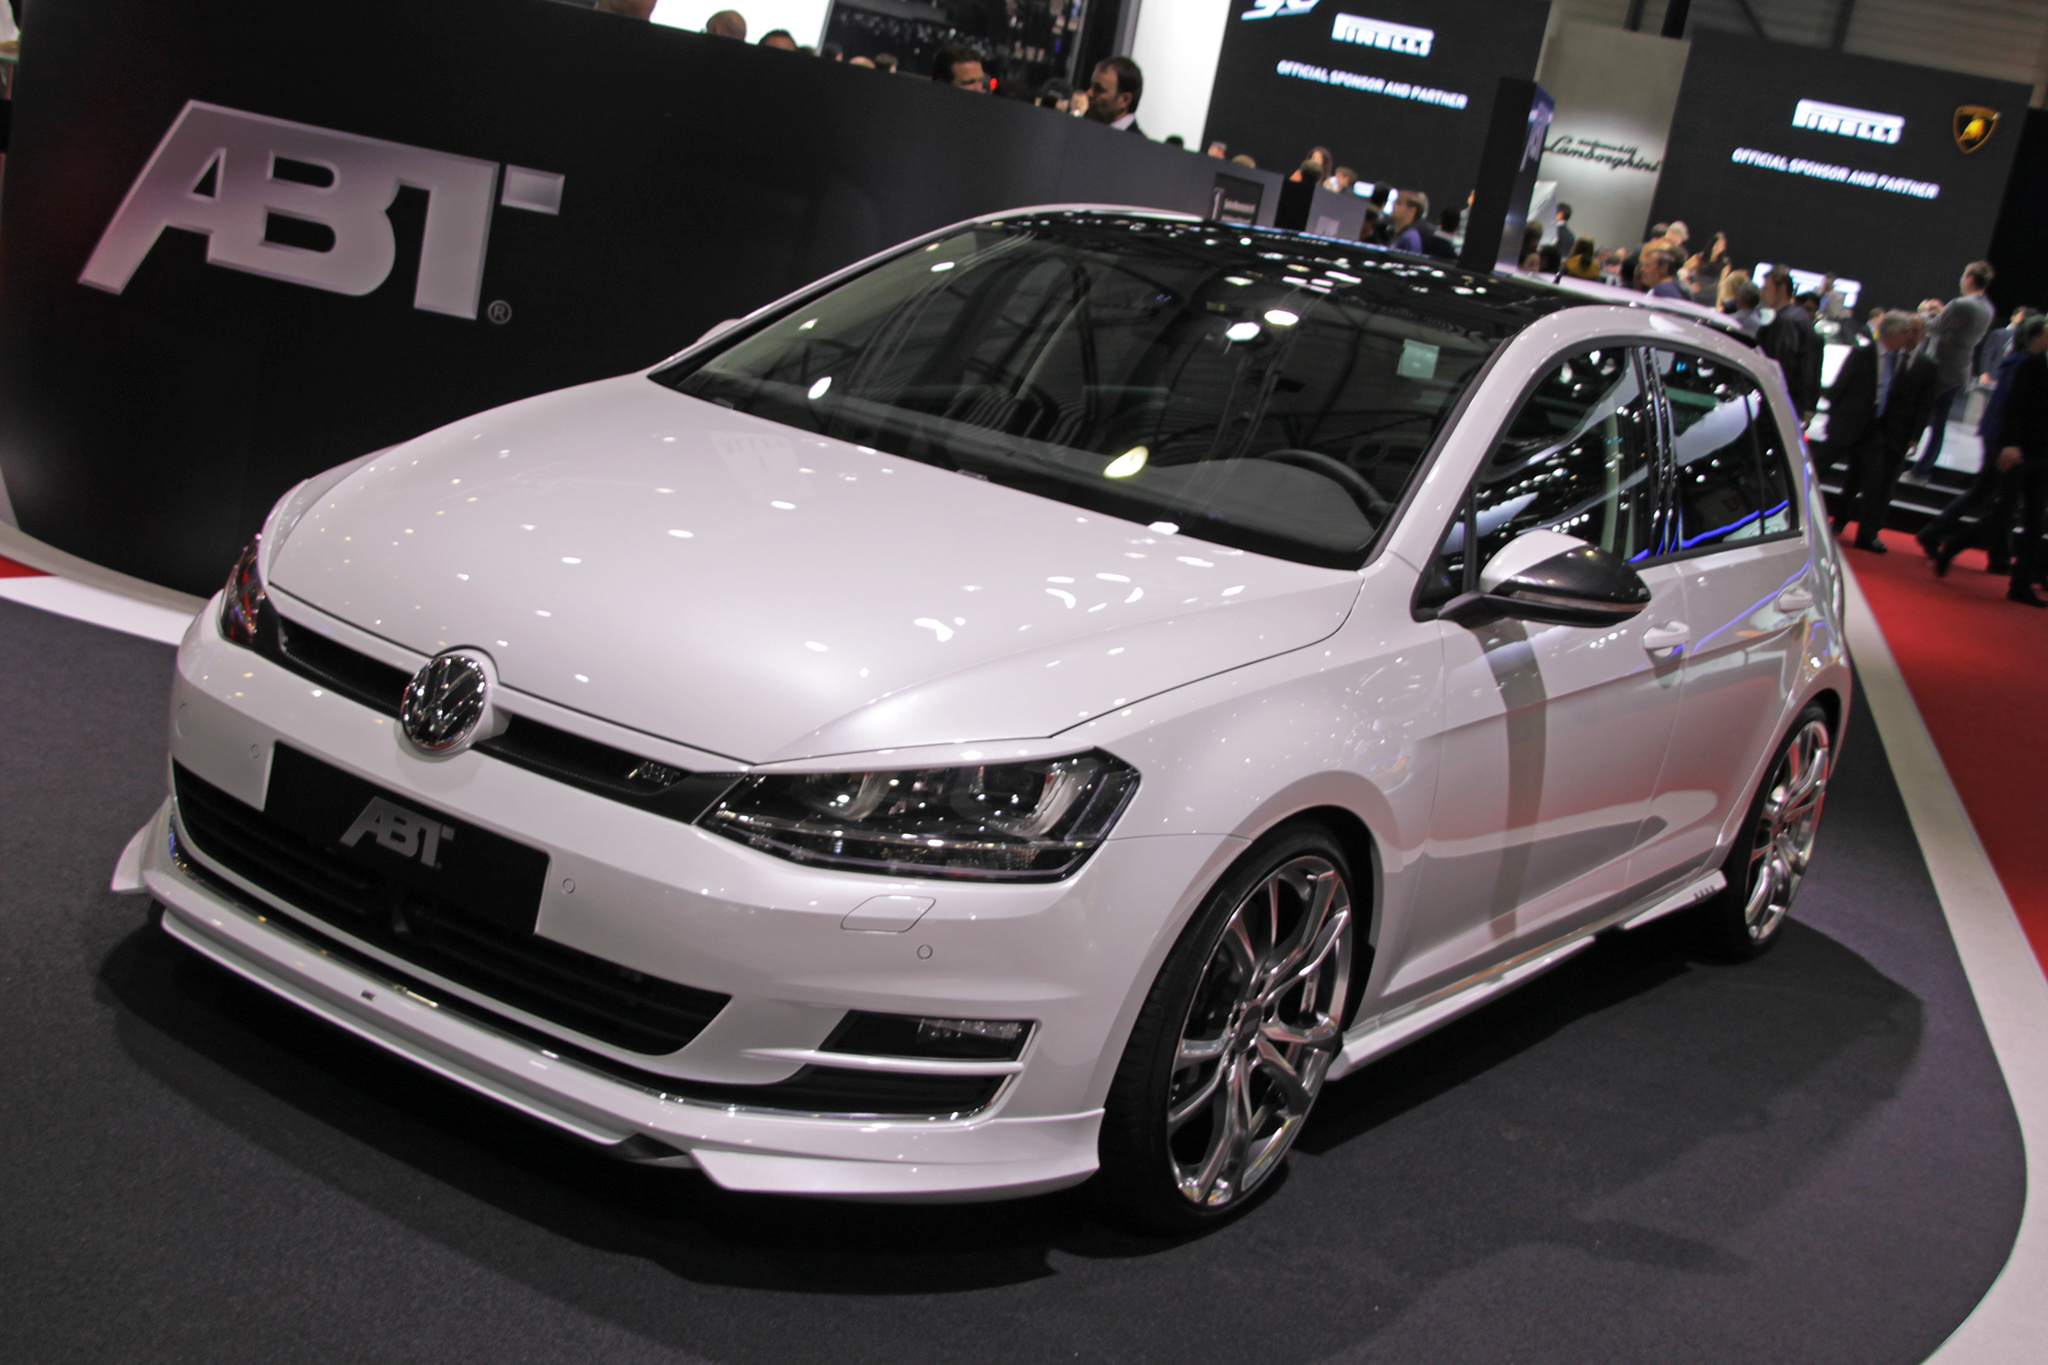 abt vw golf 7 plan te. Black Bedroom Furniture Sets. Home Design Ideas